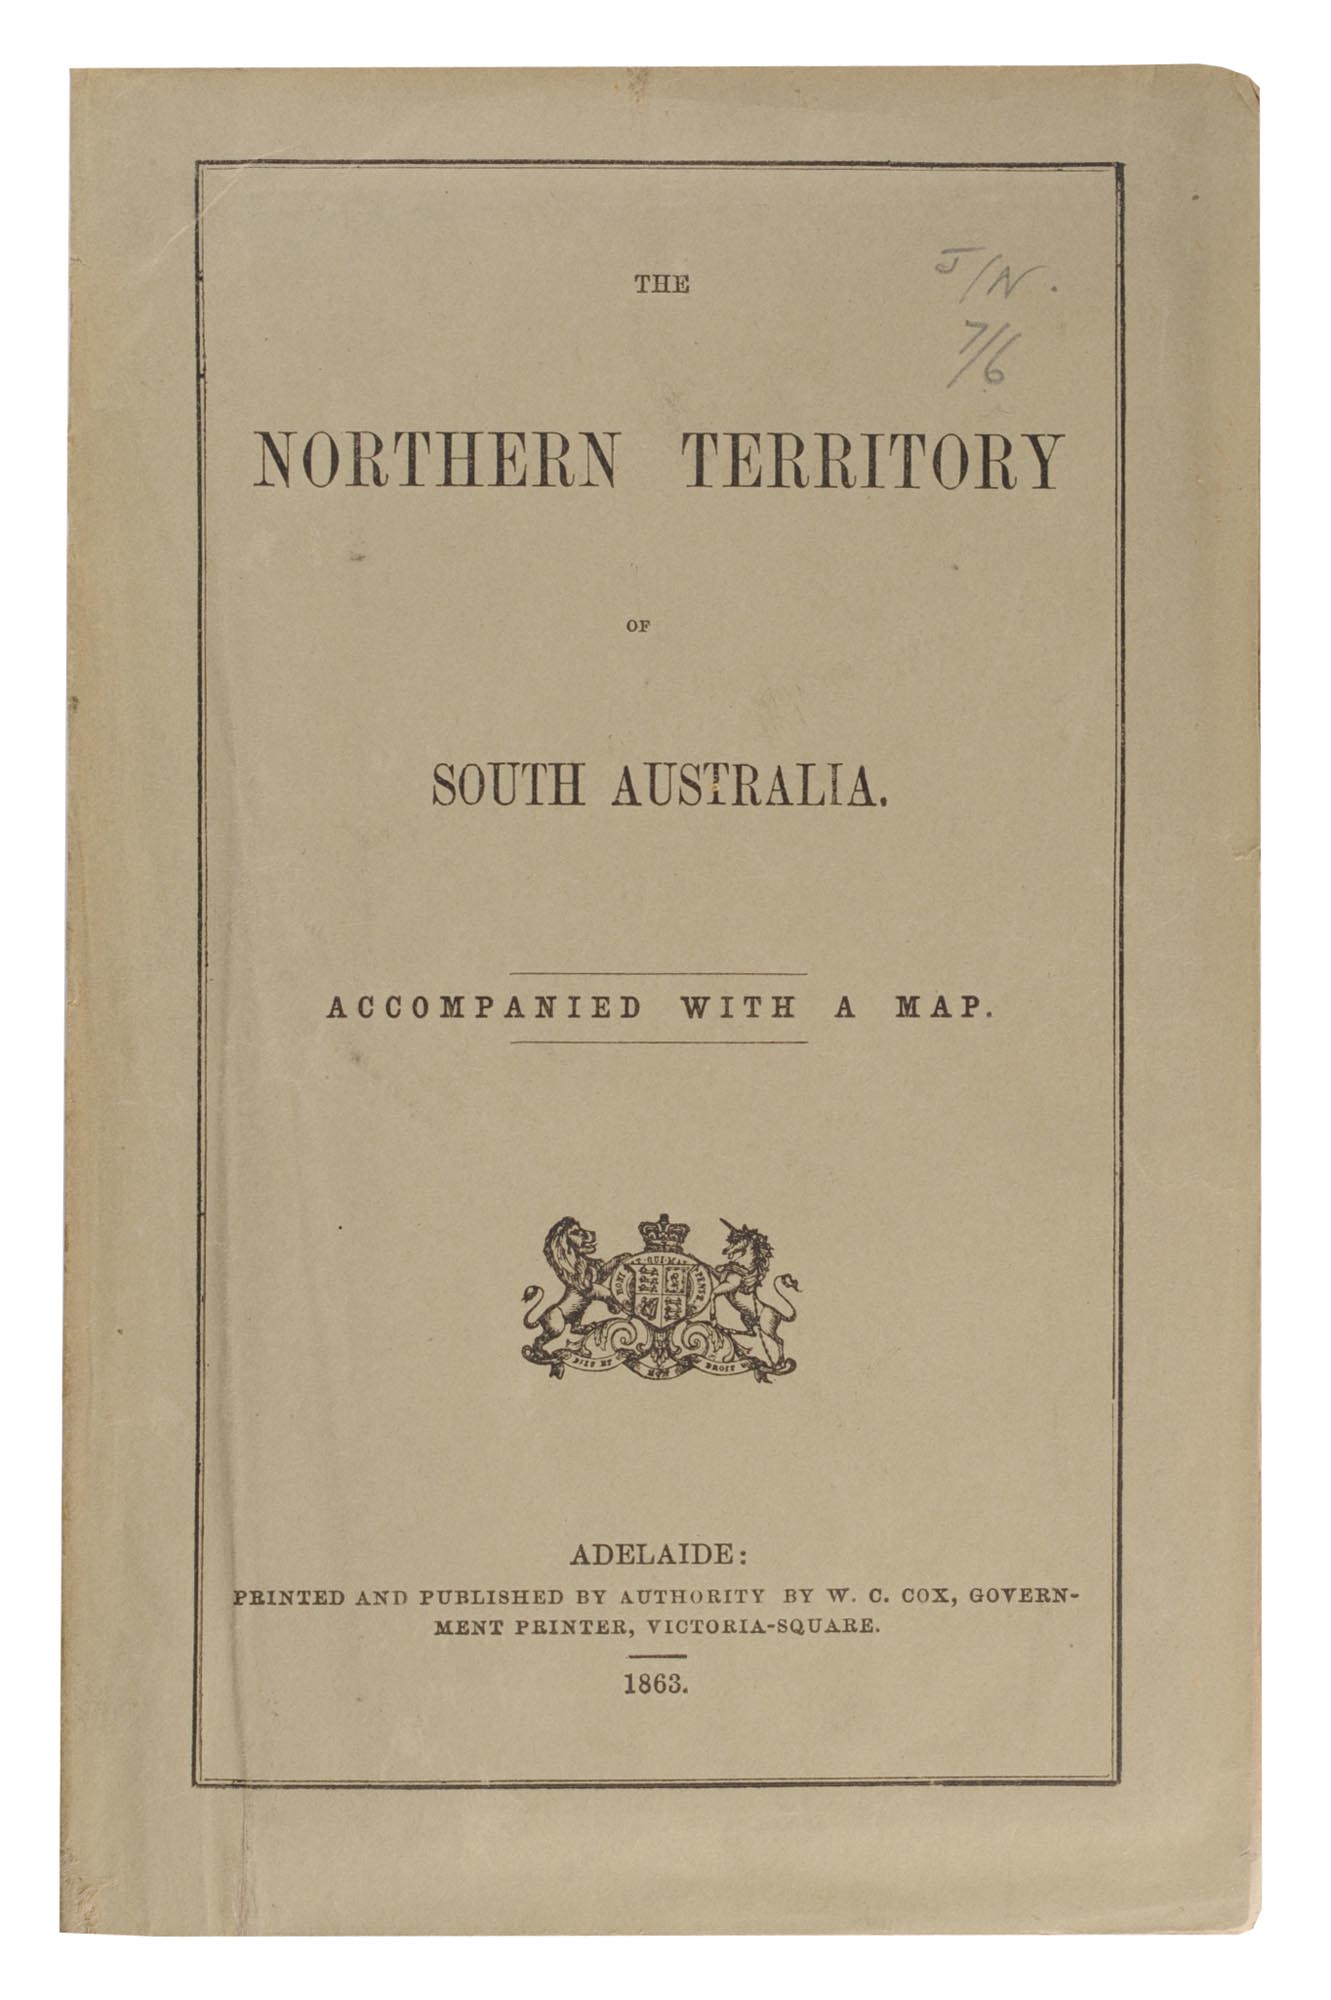 Map Of South Australia And Northern Territory.The Northern Territory Of South Australia Accompanied With A Map